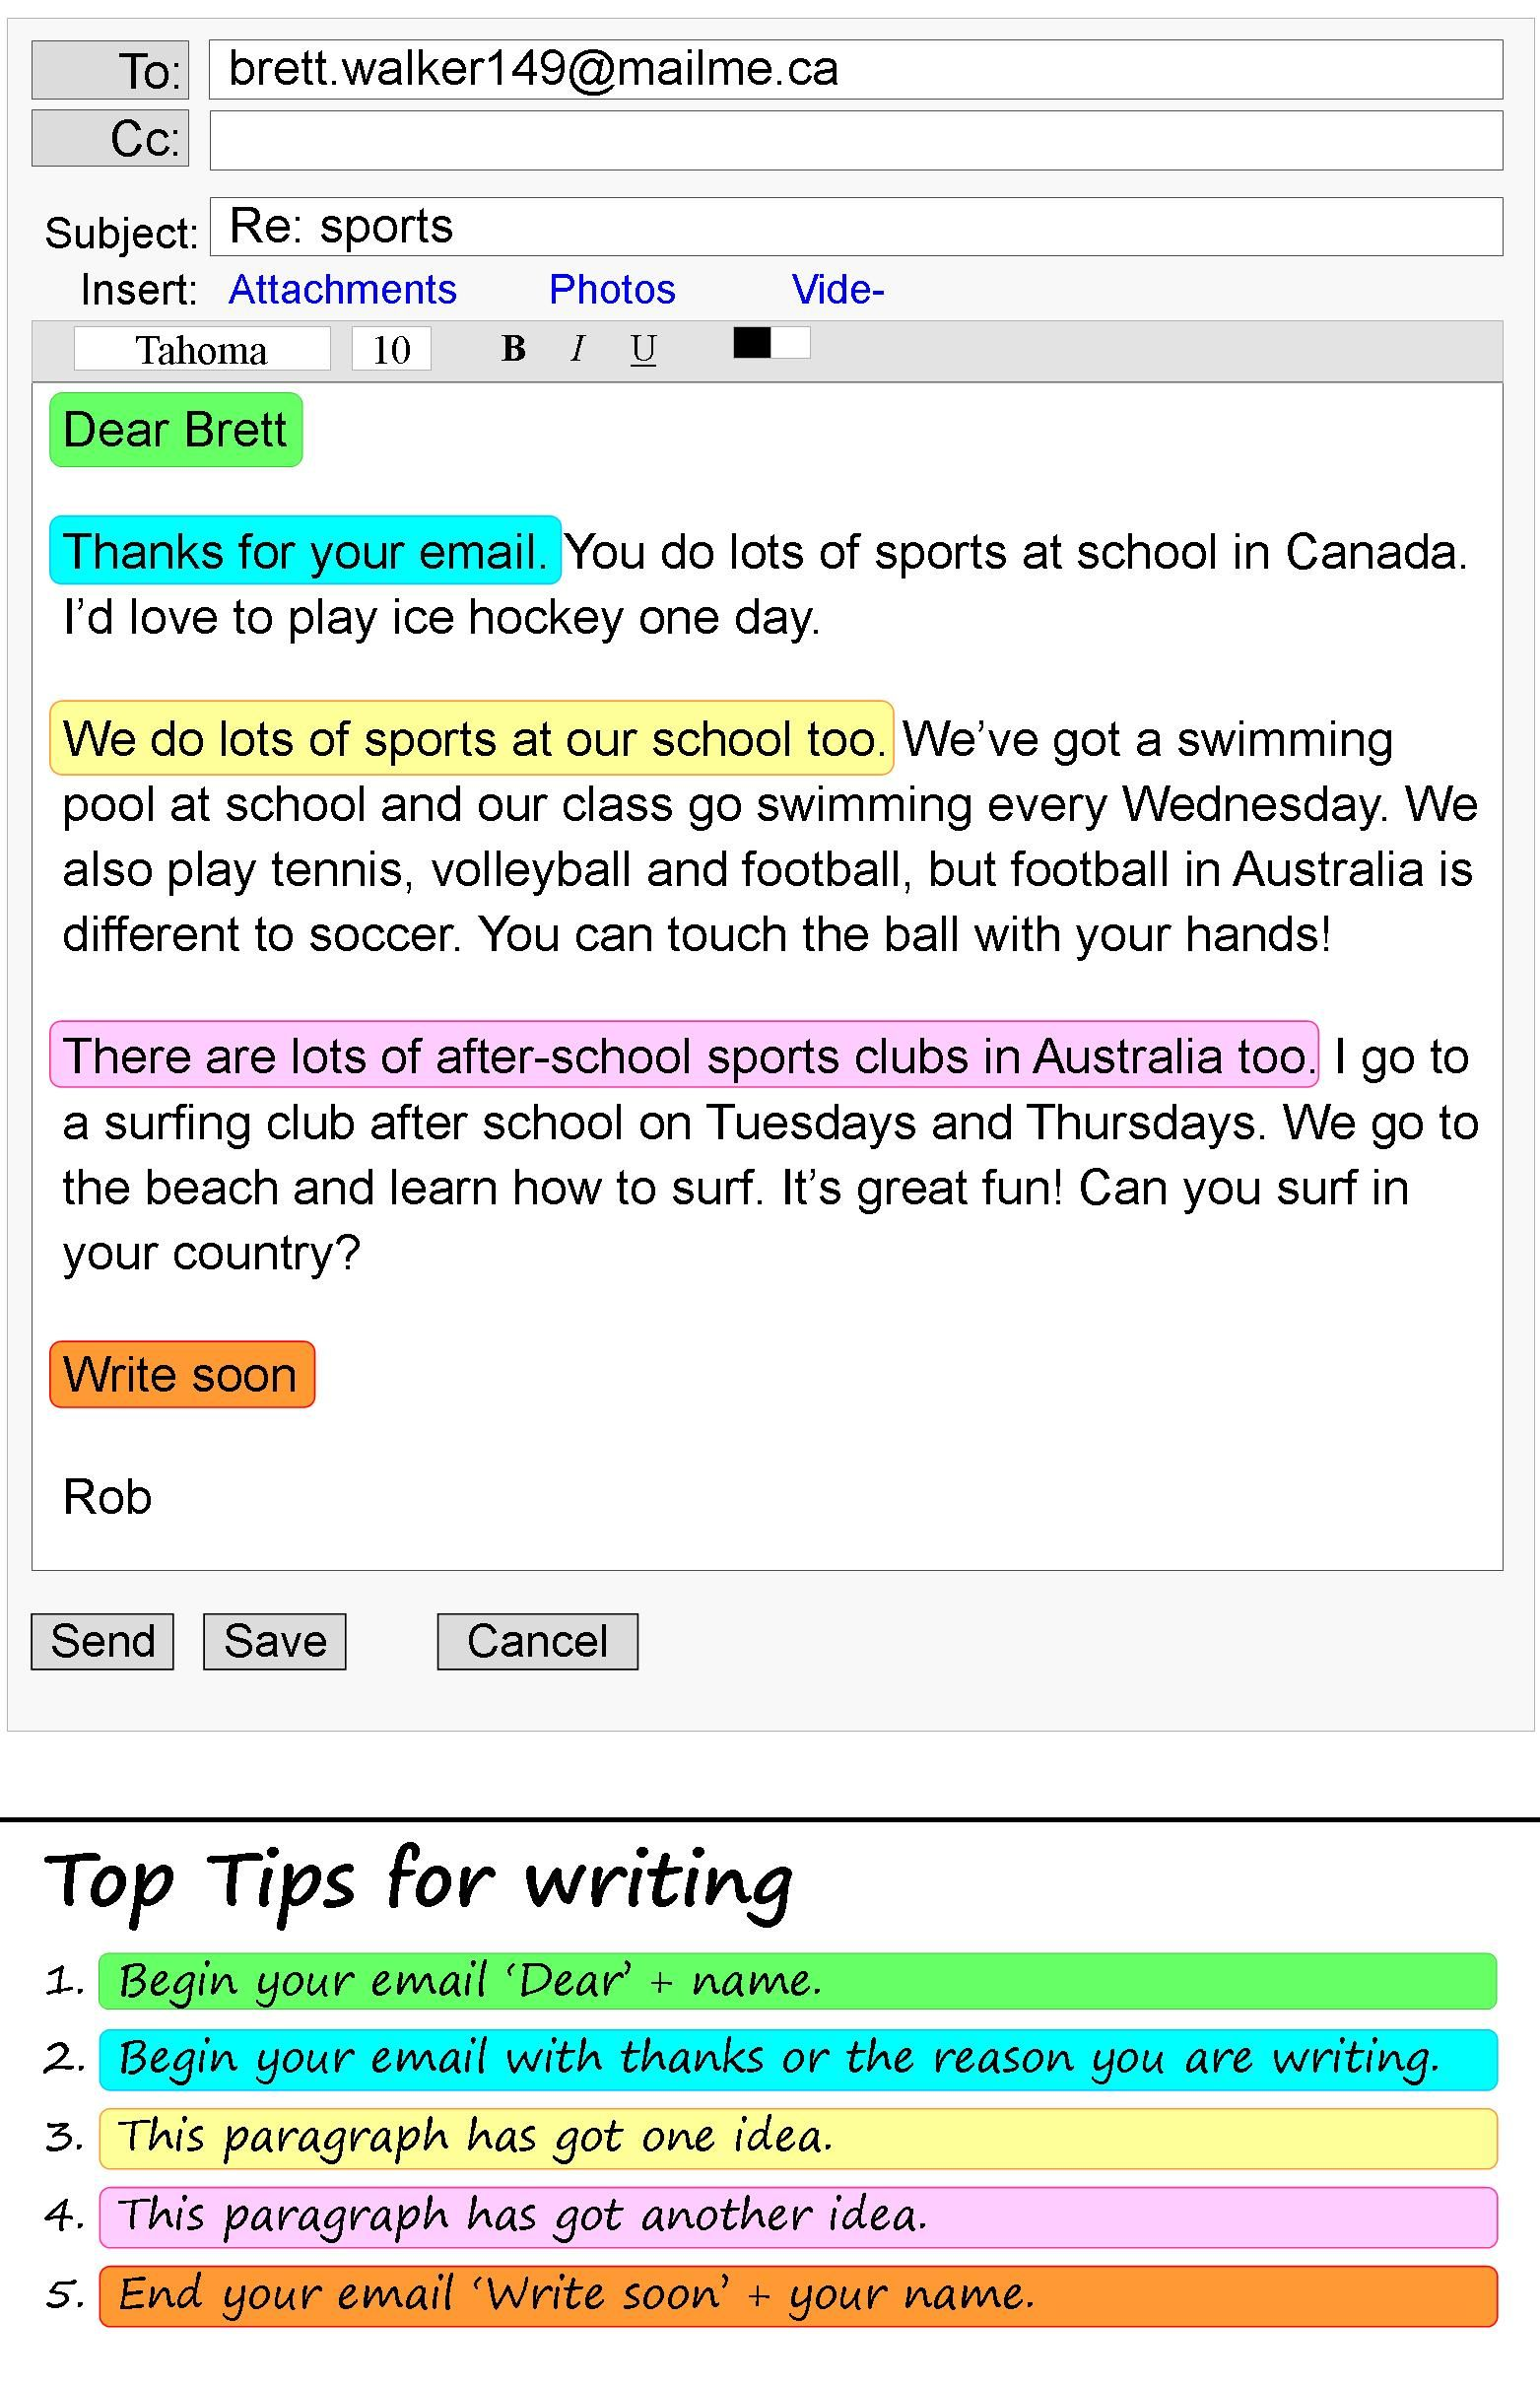 An email about sports learnenglish teens british council an email about sports learnenglish teens british council ccuart Gallery